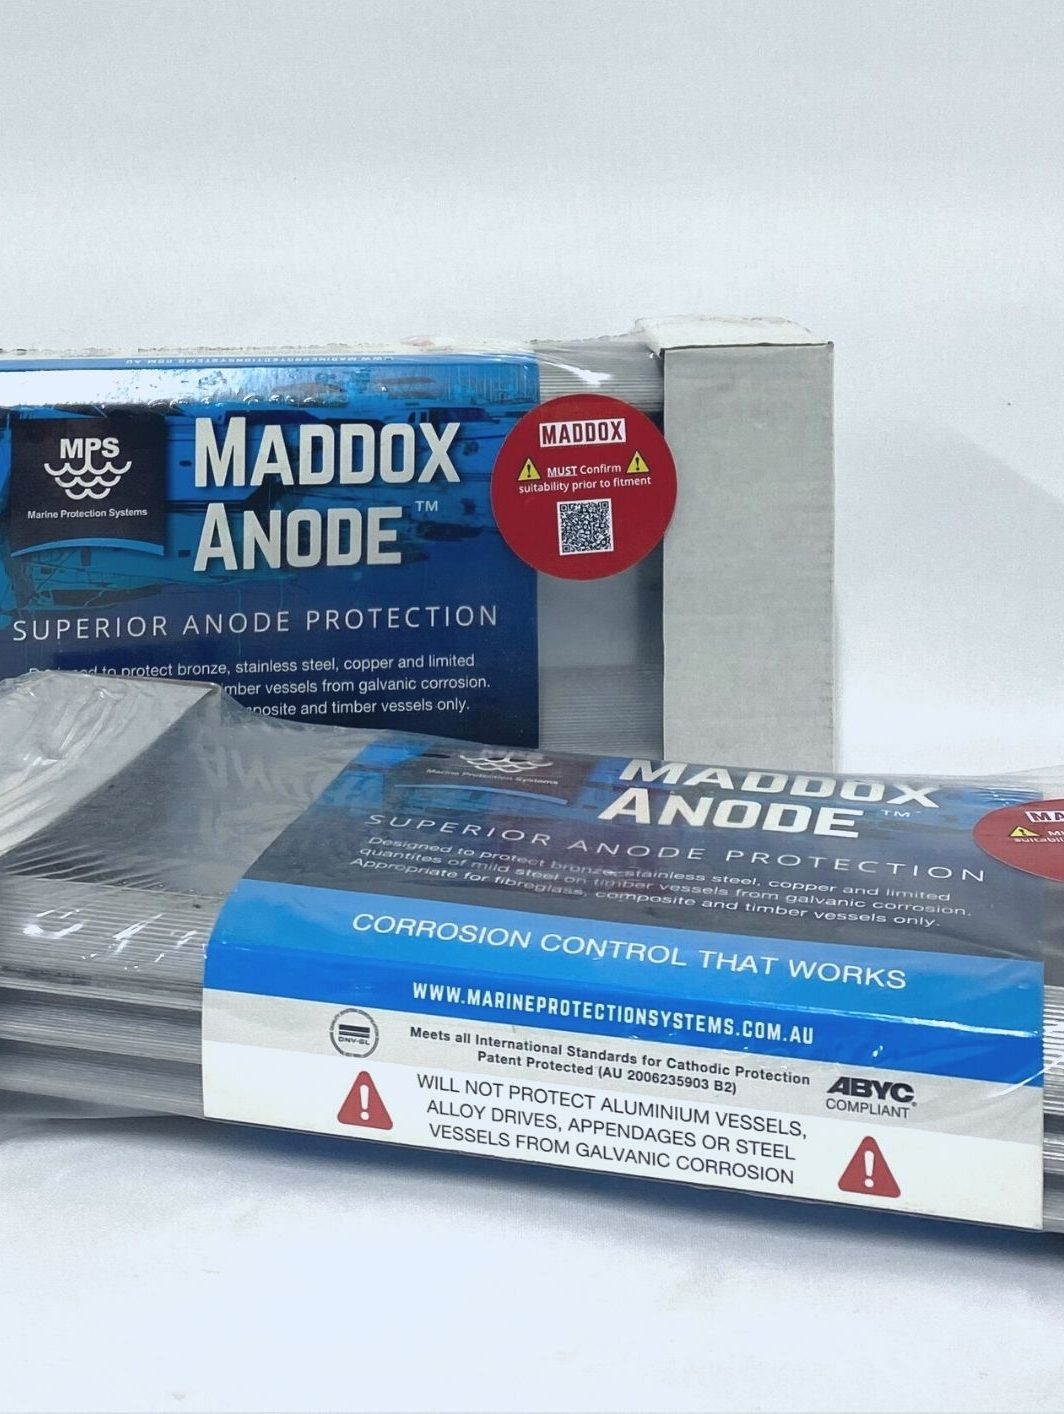 Maddox Anode MPS